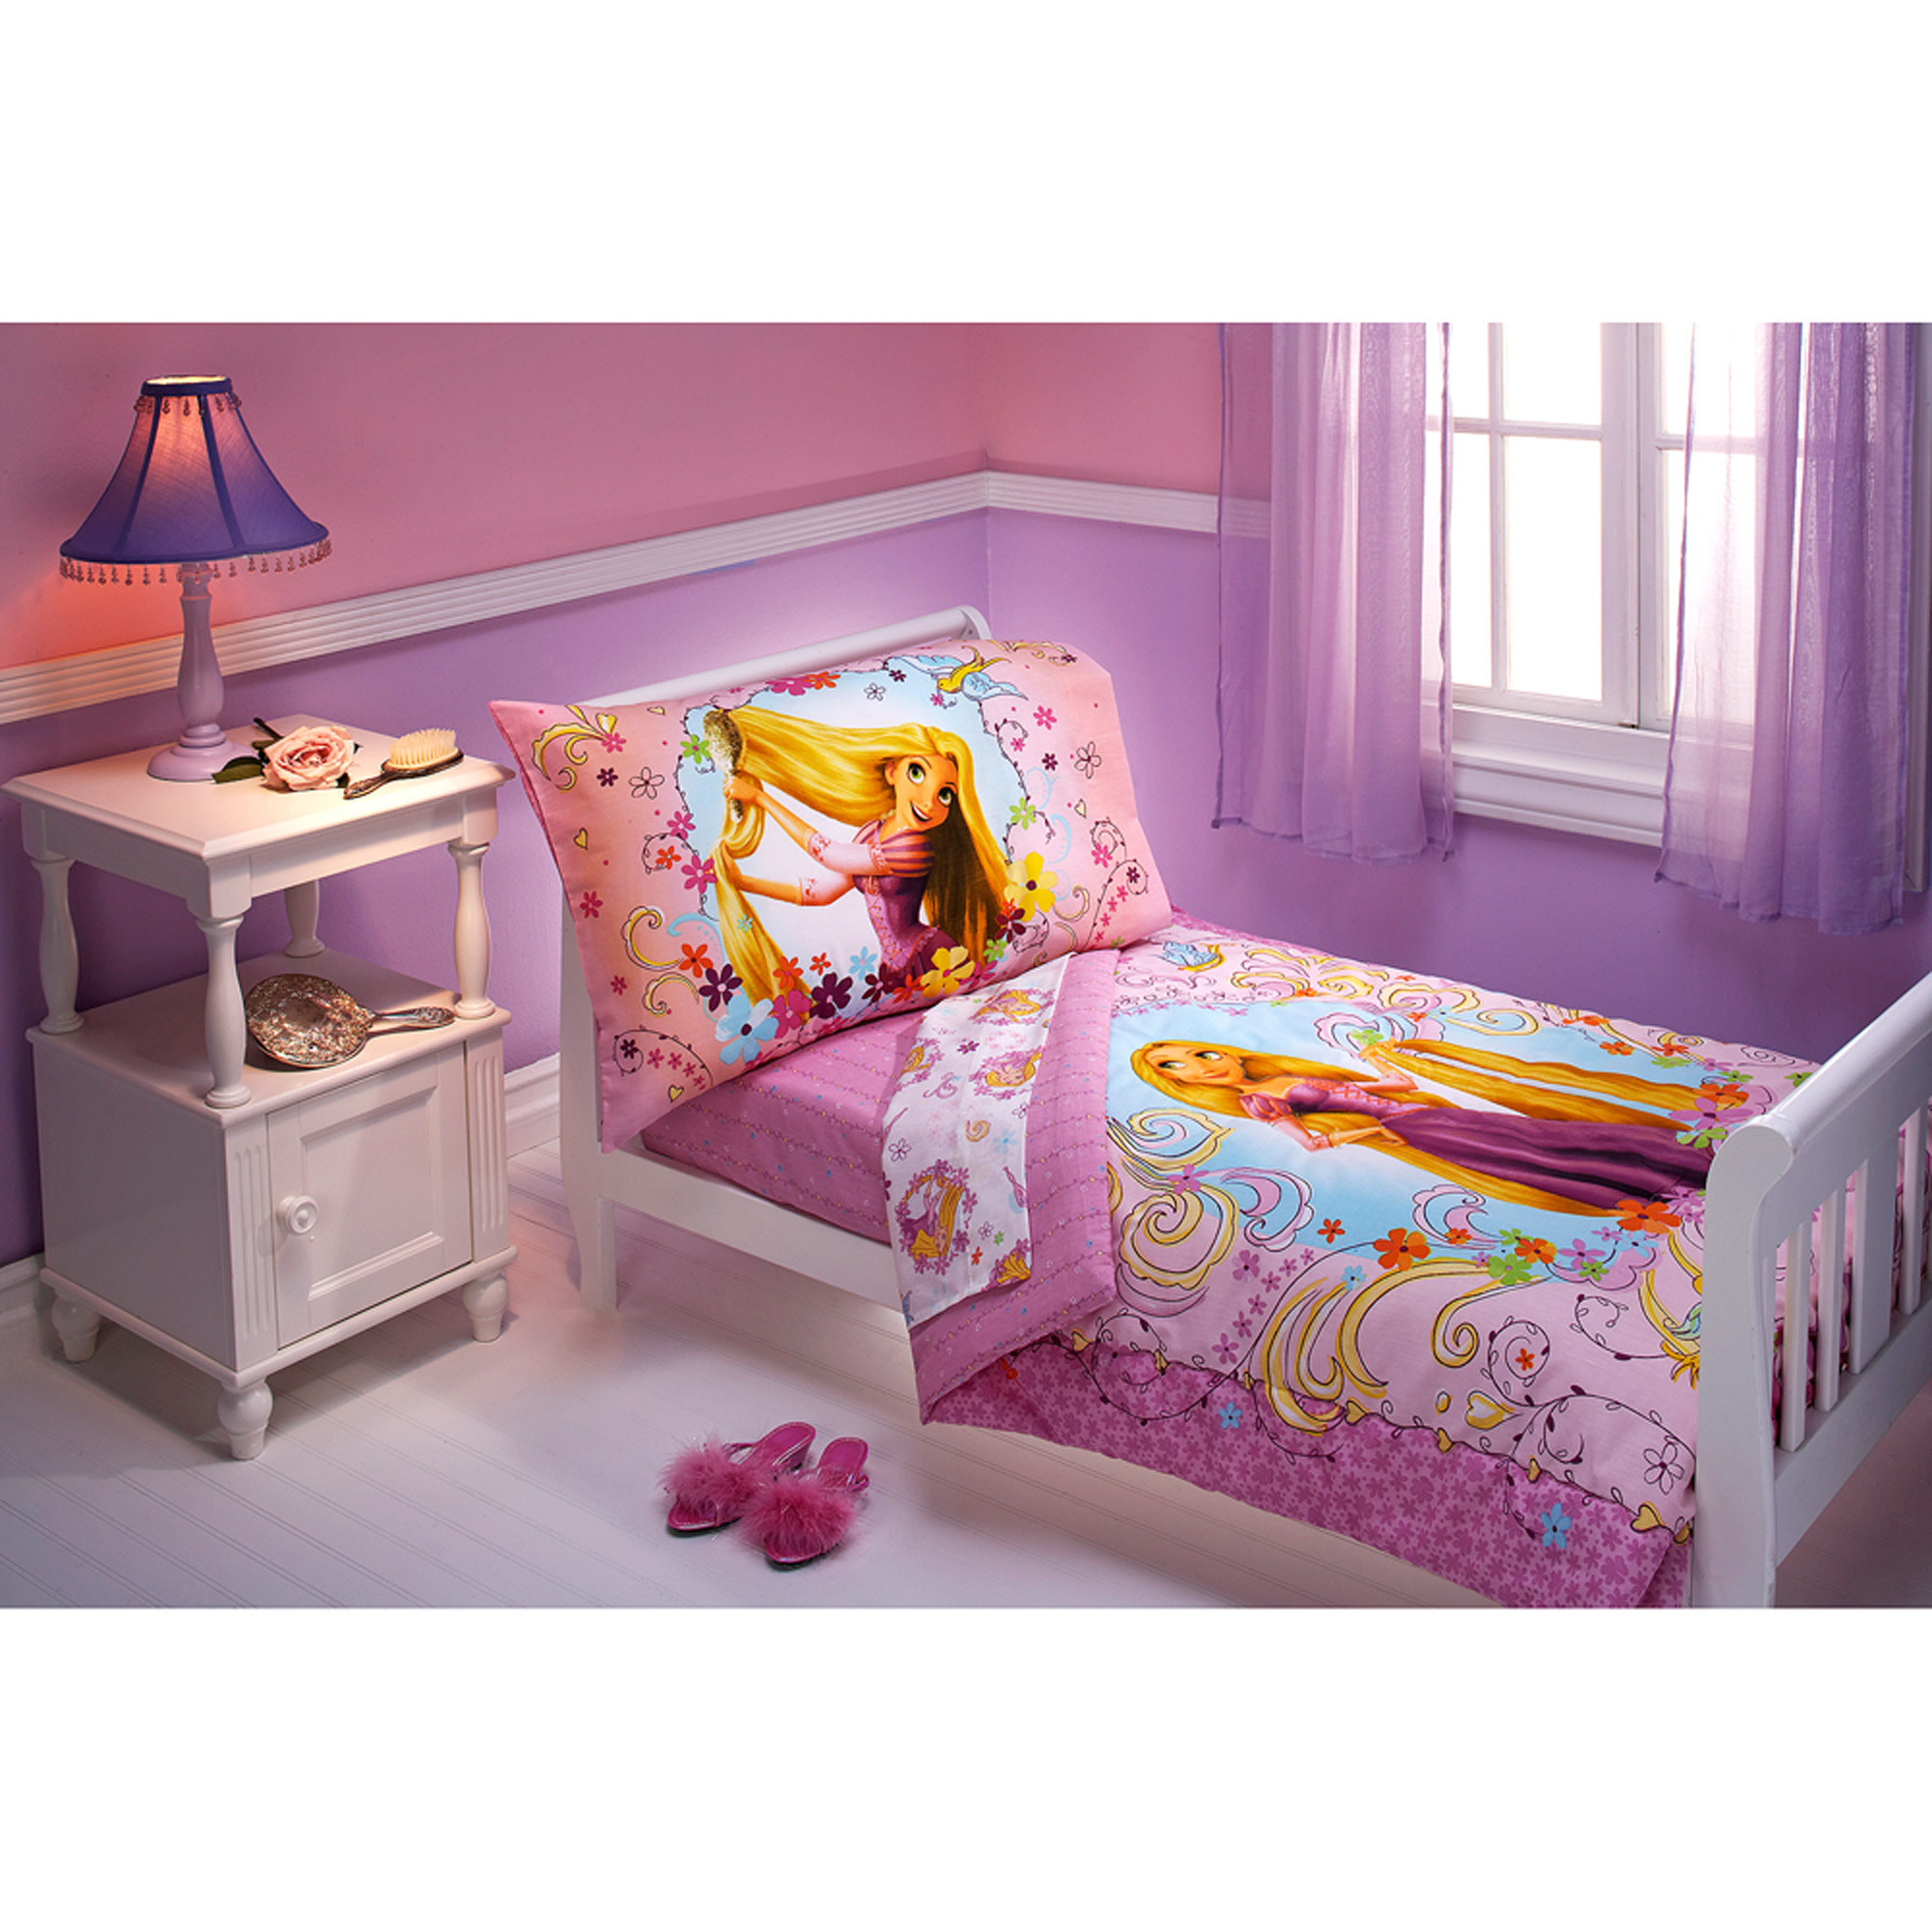 Disney Tangled 4-Piece Toddler Bedding Set